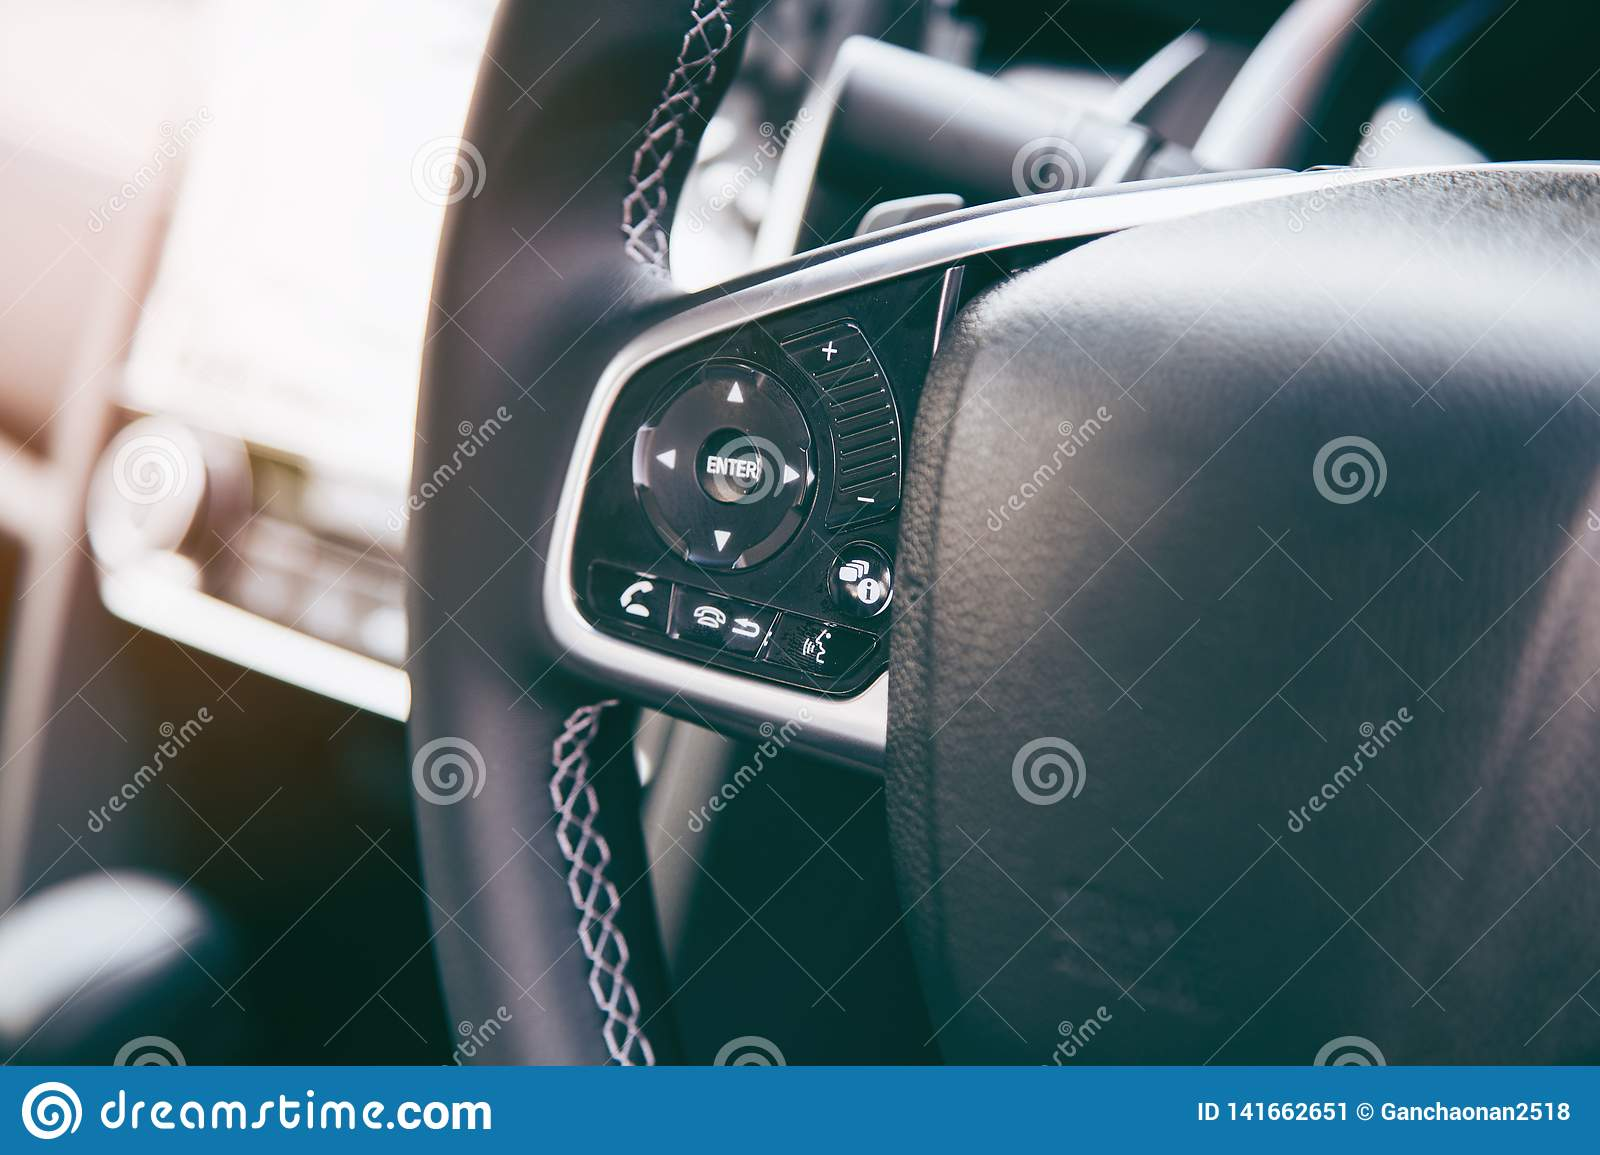 Modern black steering wheel with multifunction buttons for quick control, close-up in the car